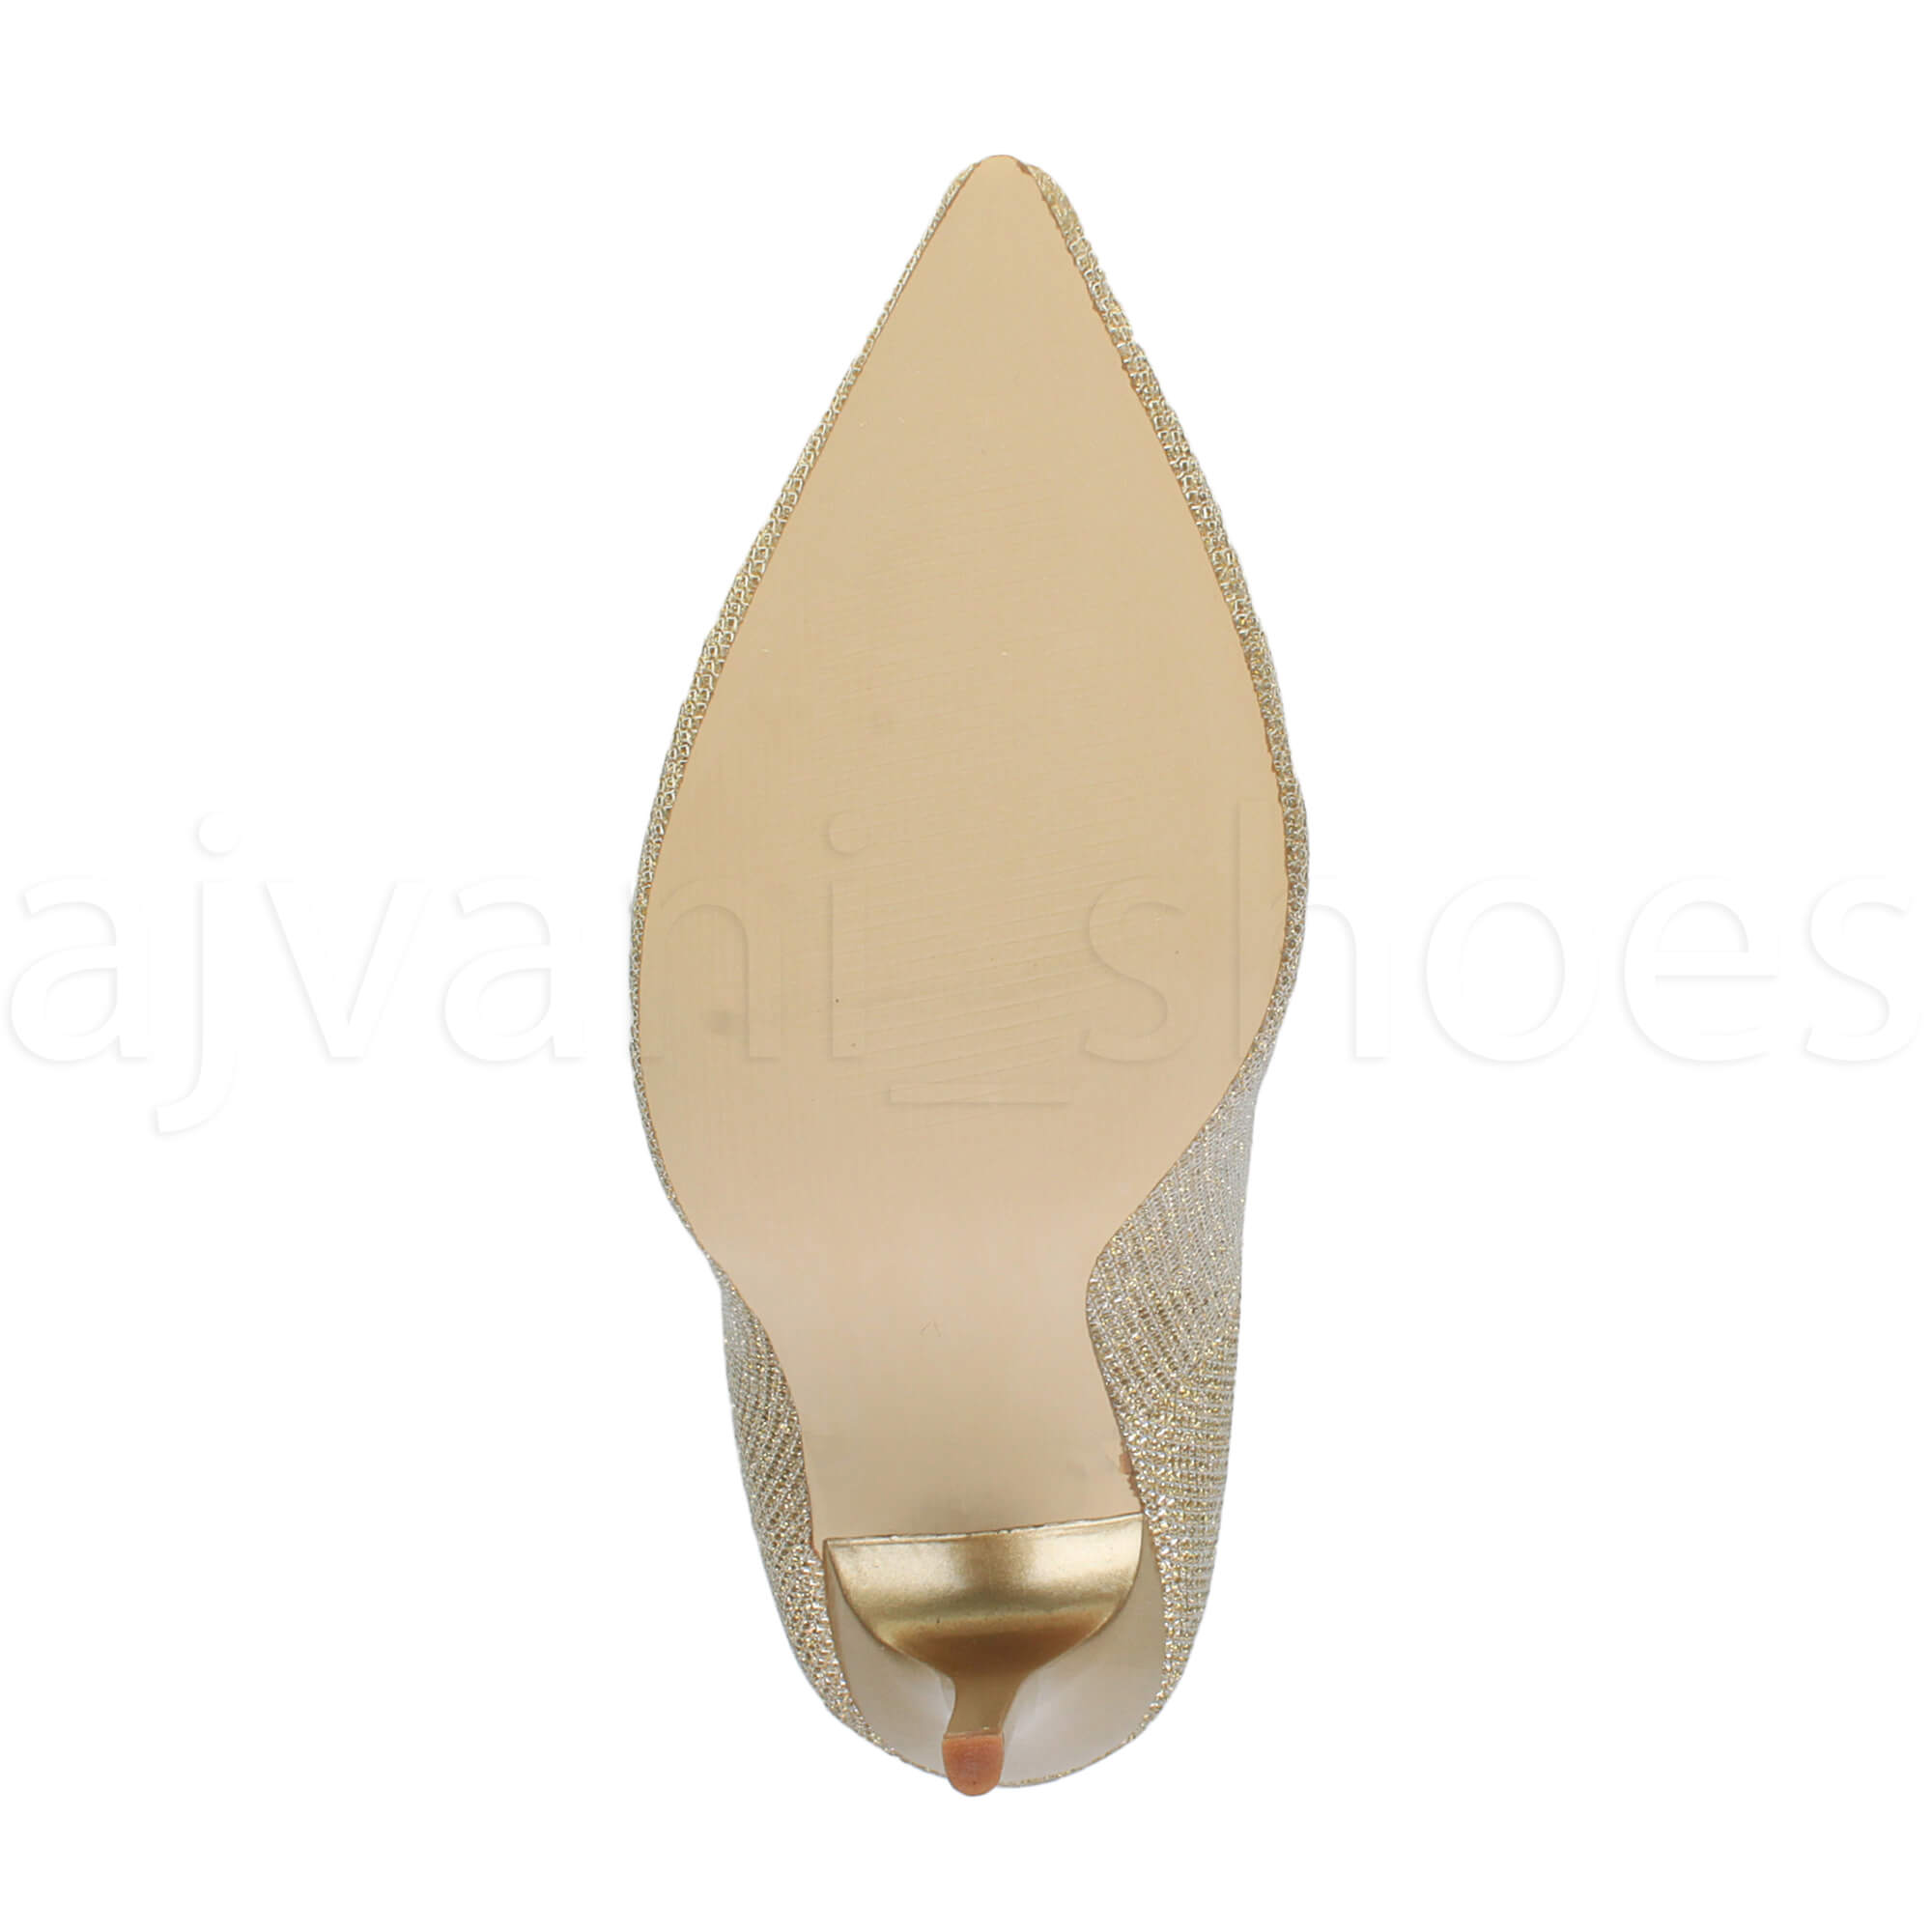 WOMENS-LADIES-HIGH-HEEL-POINTED-CONTRAST-COURT-SMART-PARTY-WORK-SHOES-PUMPS-SIZE thumbnail 79